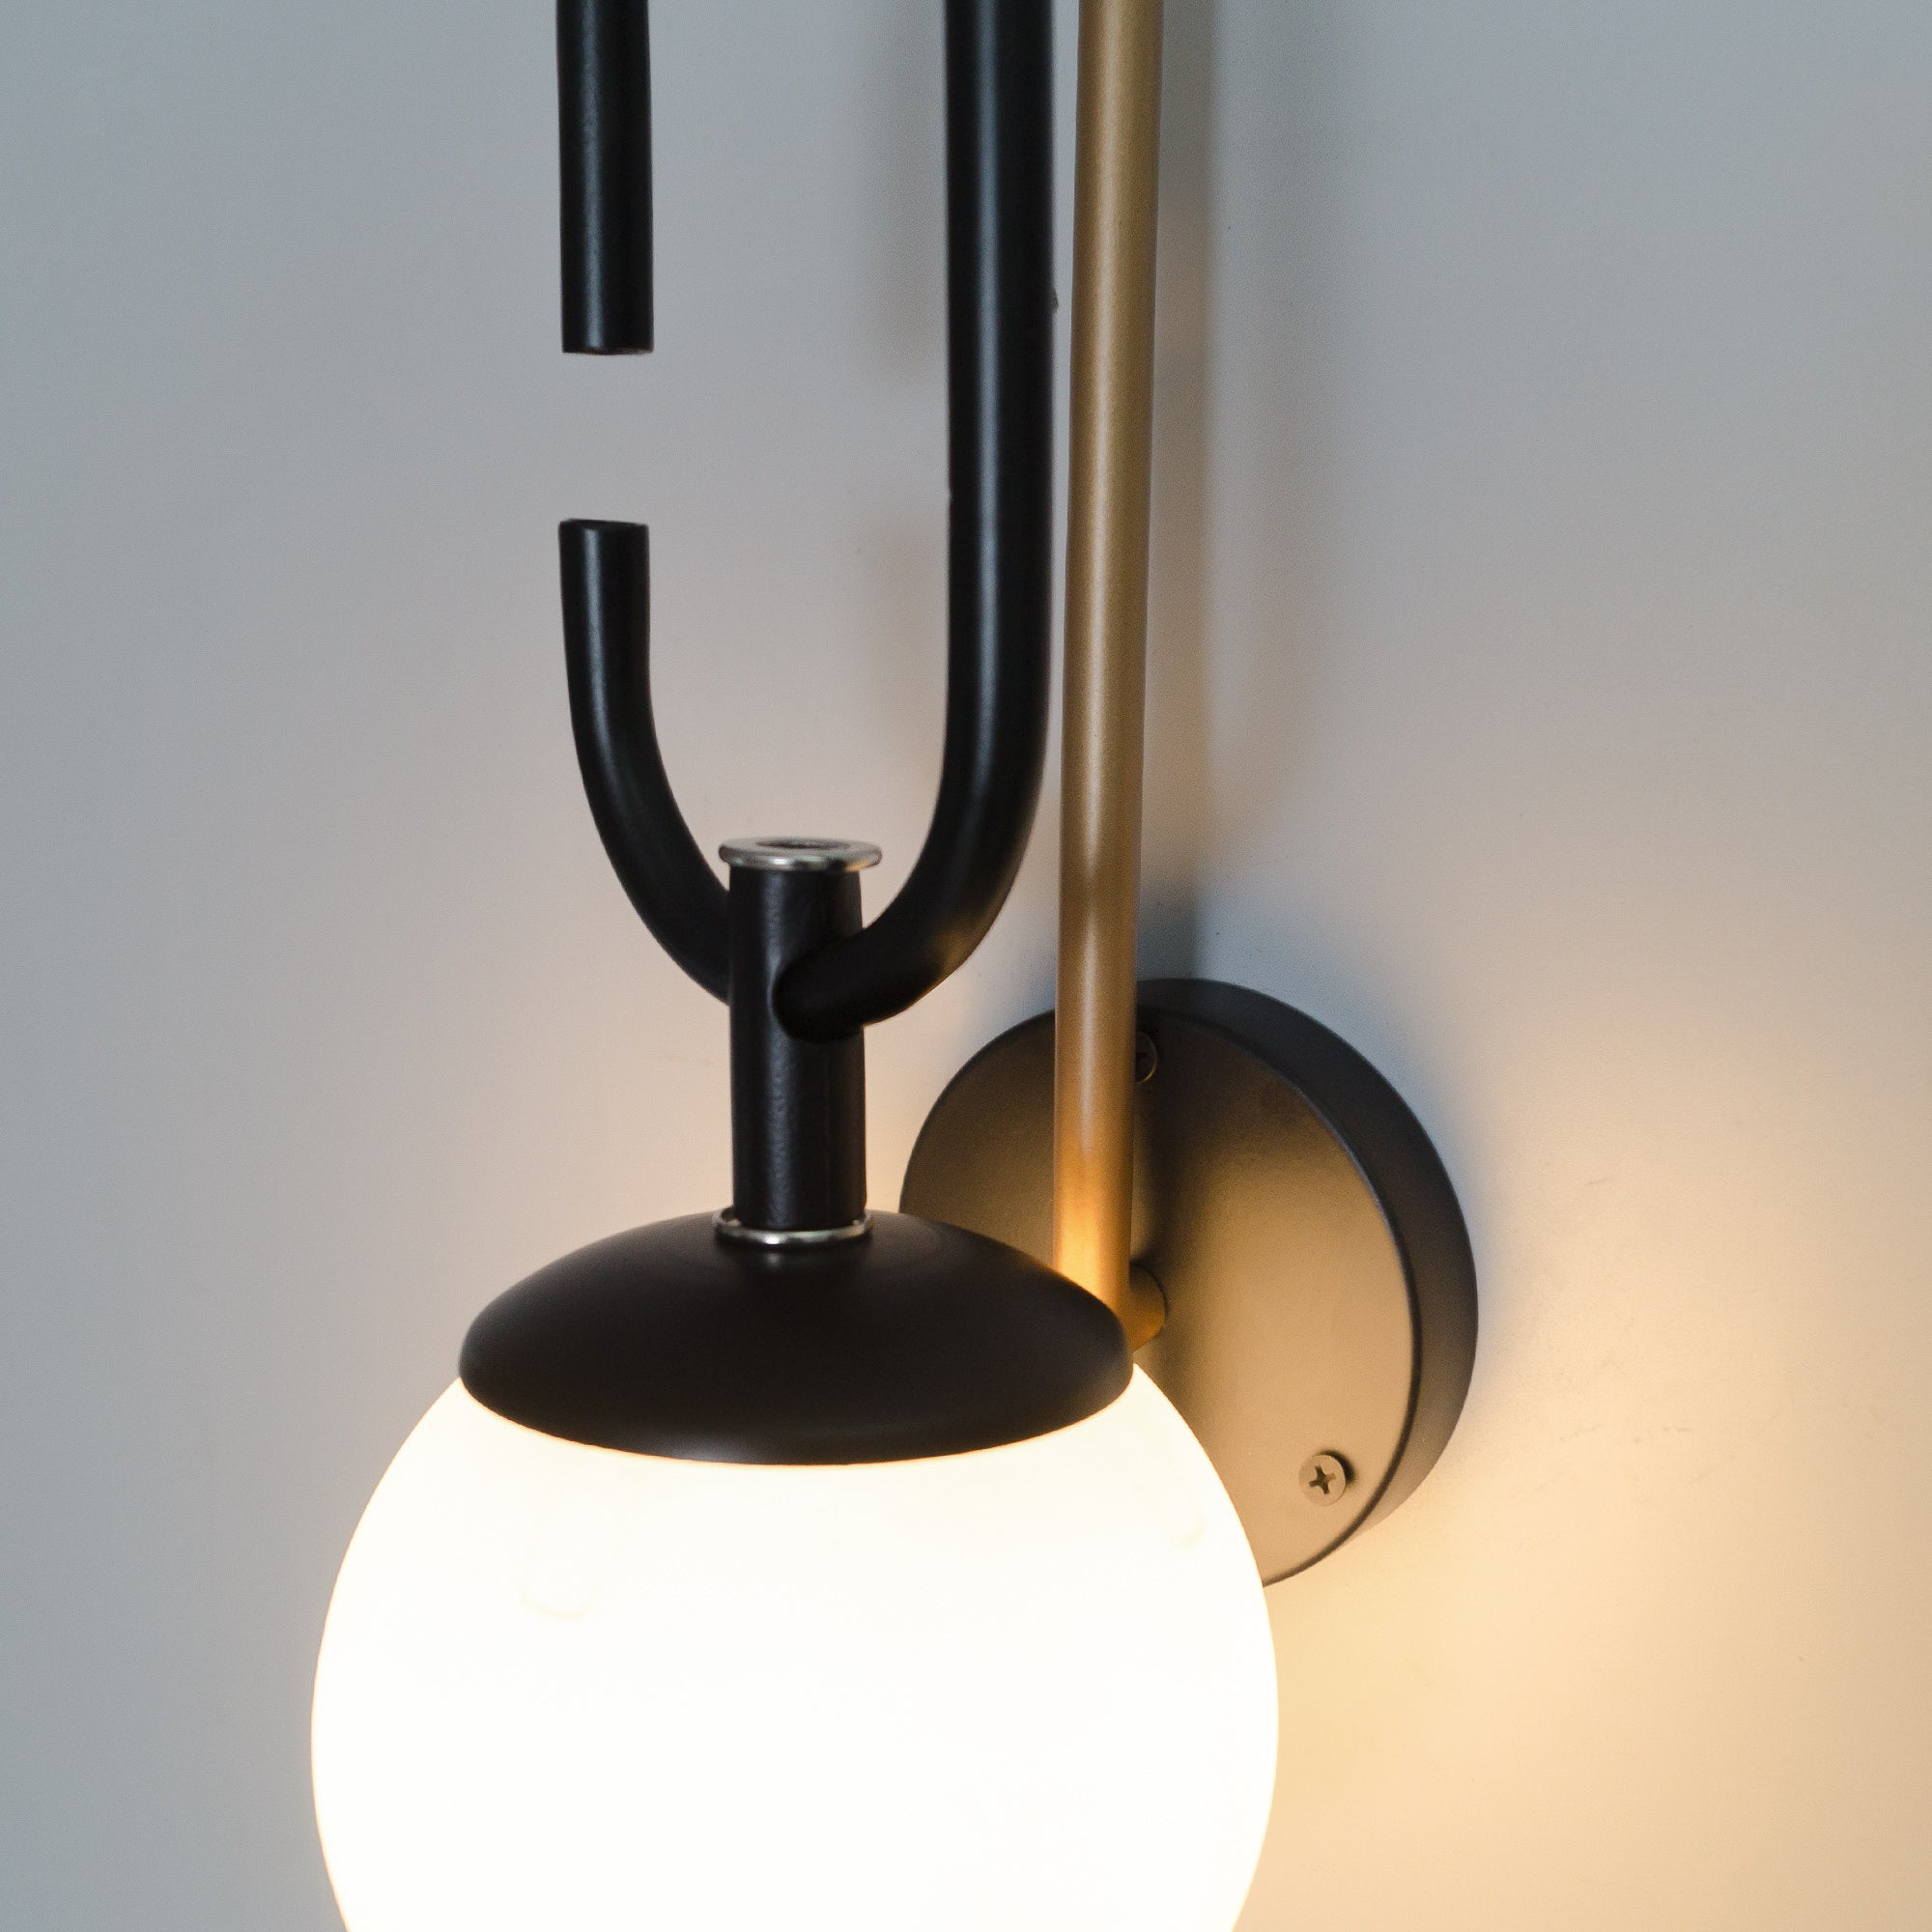 Vivid Torus Glass Wall Sconce - The Black Steel